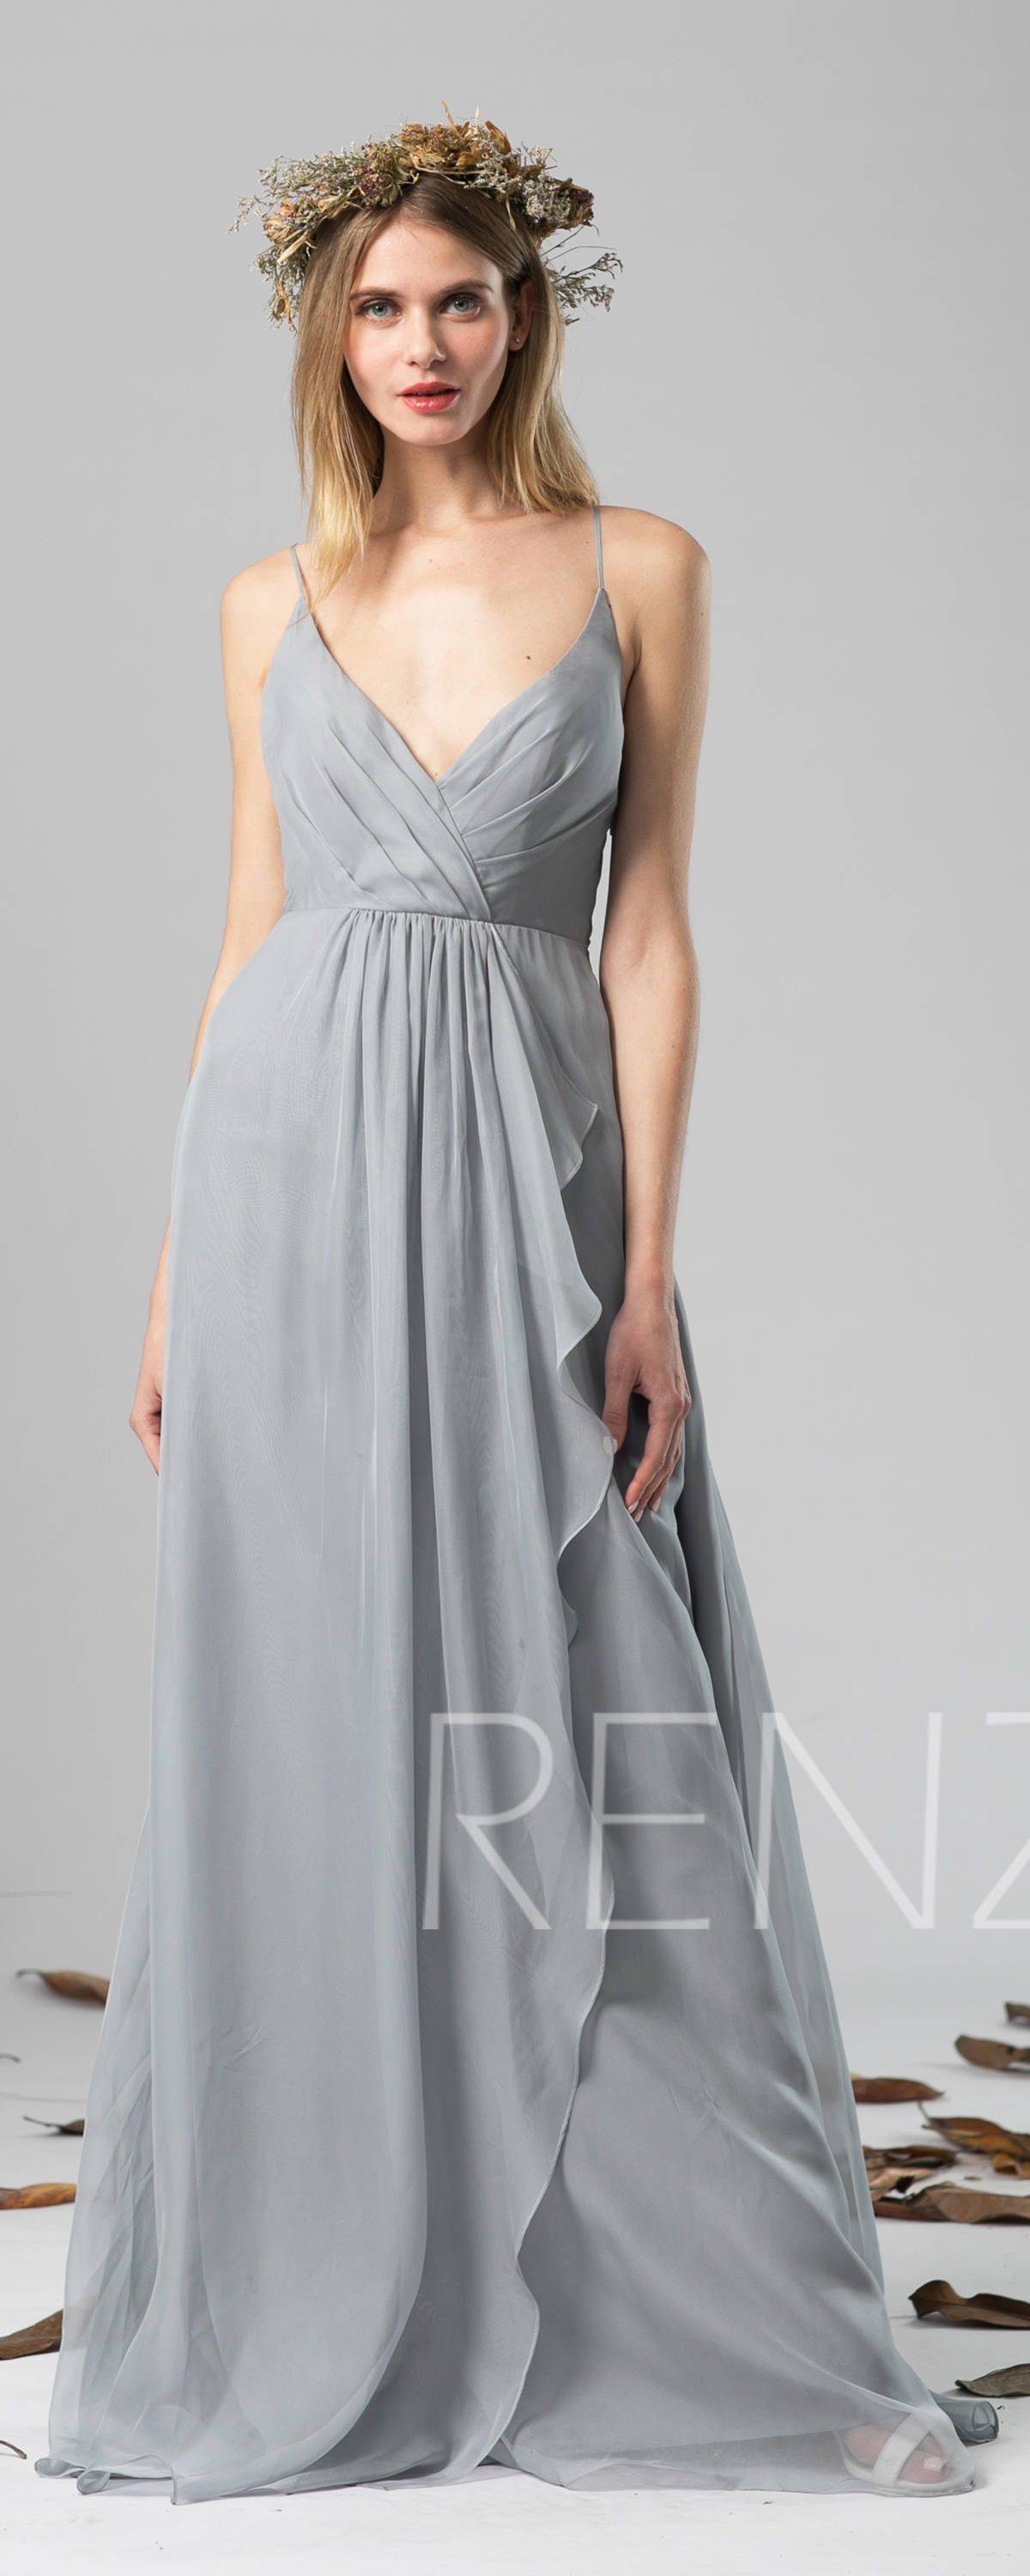 Wedding dresses v neck  Bridesmaid Dress Medium Gray Chiffon Dress Wedding DressV Neck